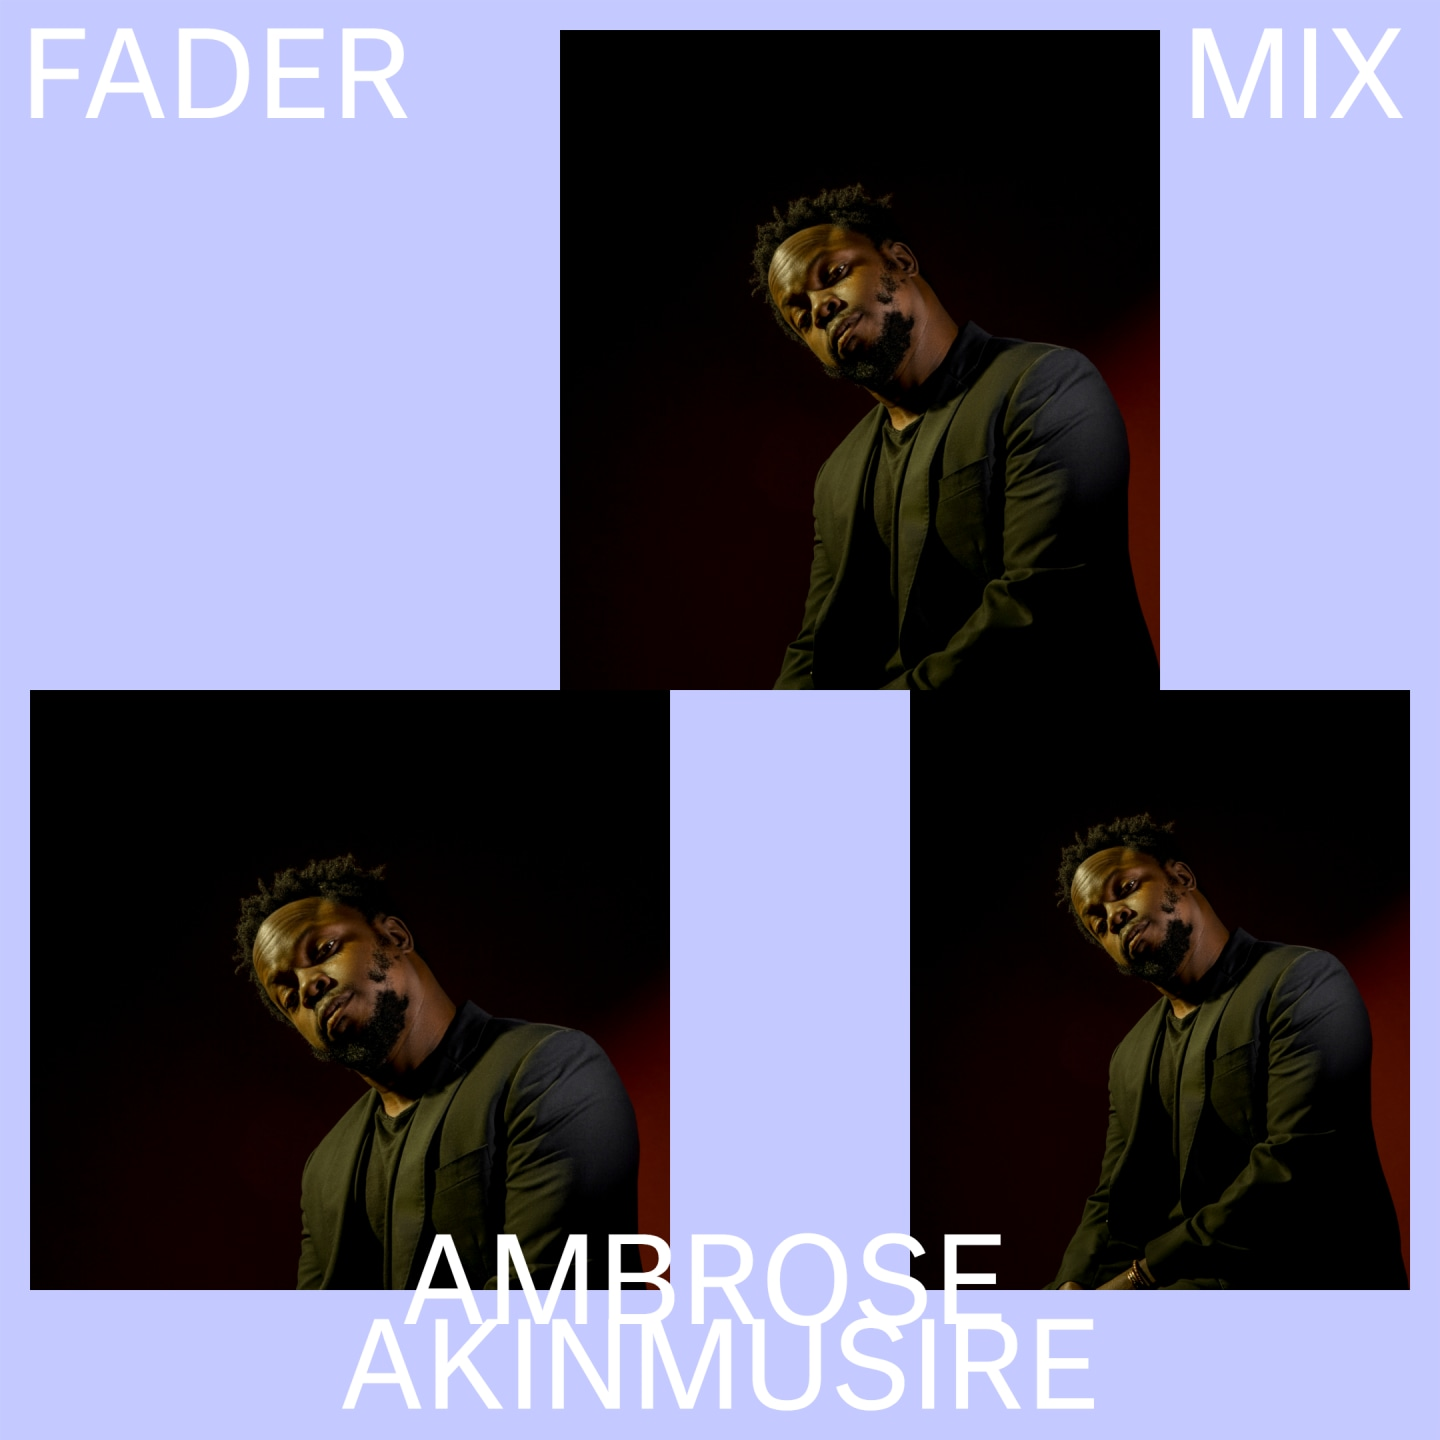 Listen to a new FADER Mix by Ambrose Akinmusire